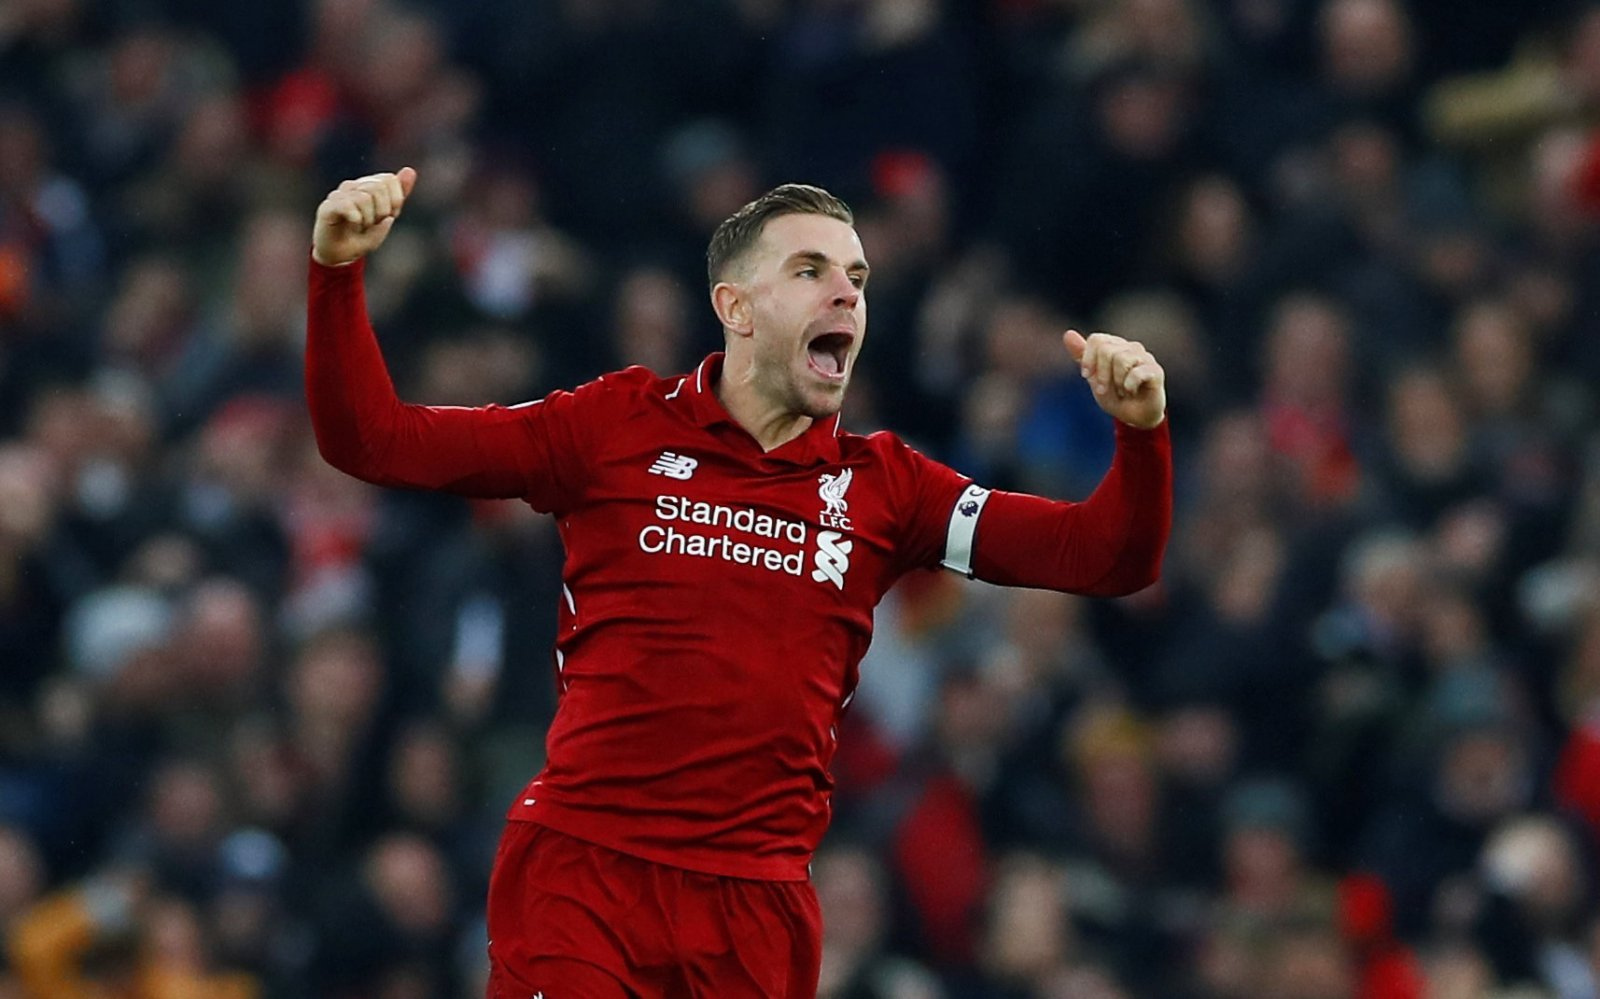 Liverpool fans on Twitter were delighted when Henderson succumbed to injury last night